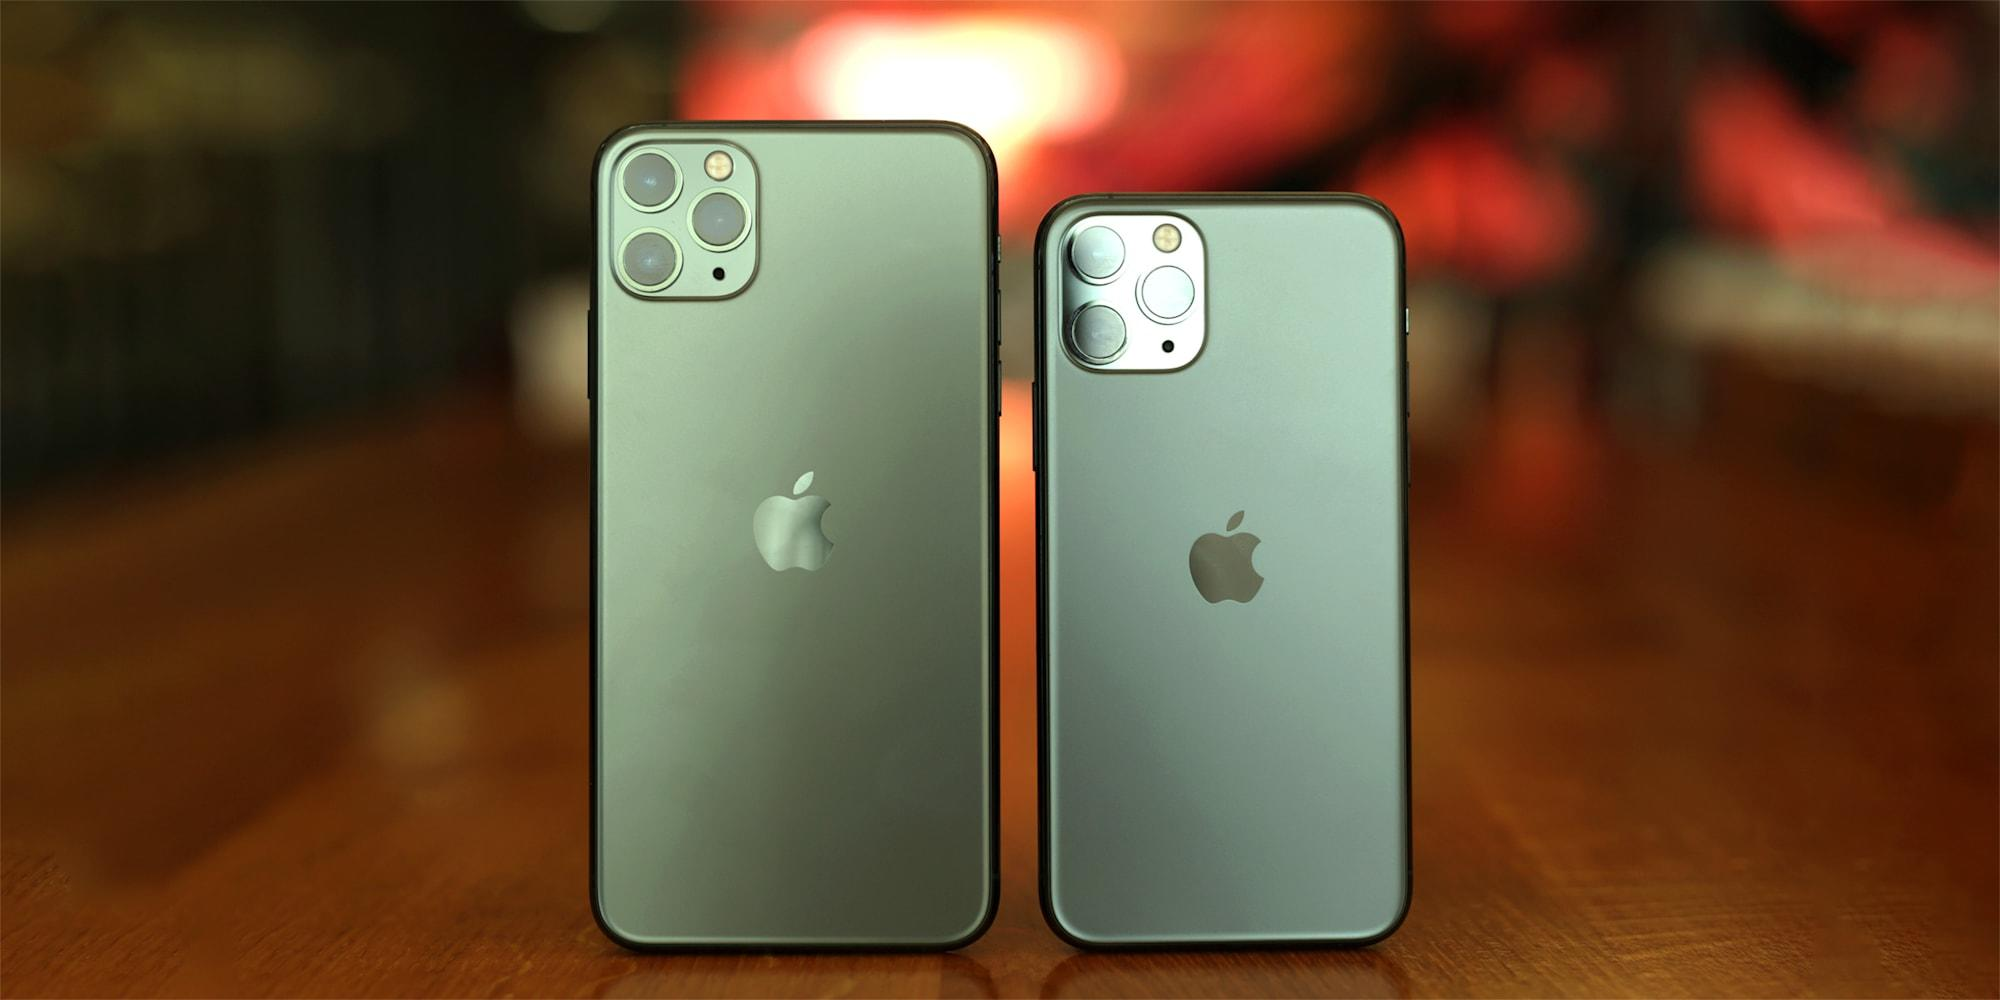 Apple Iphone 11 Pro And Pro Max Review Better But Not Groundbreaking Engadget